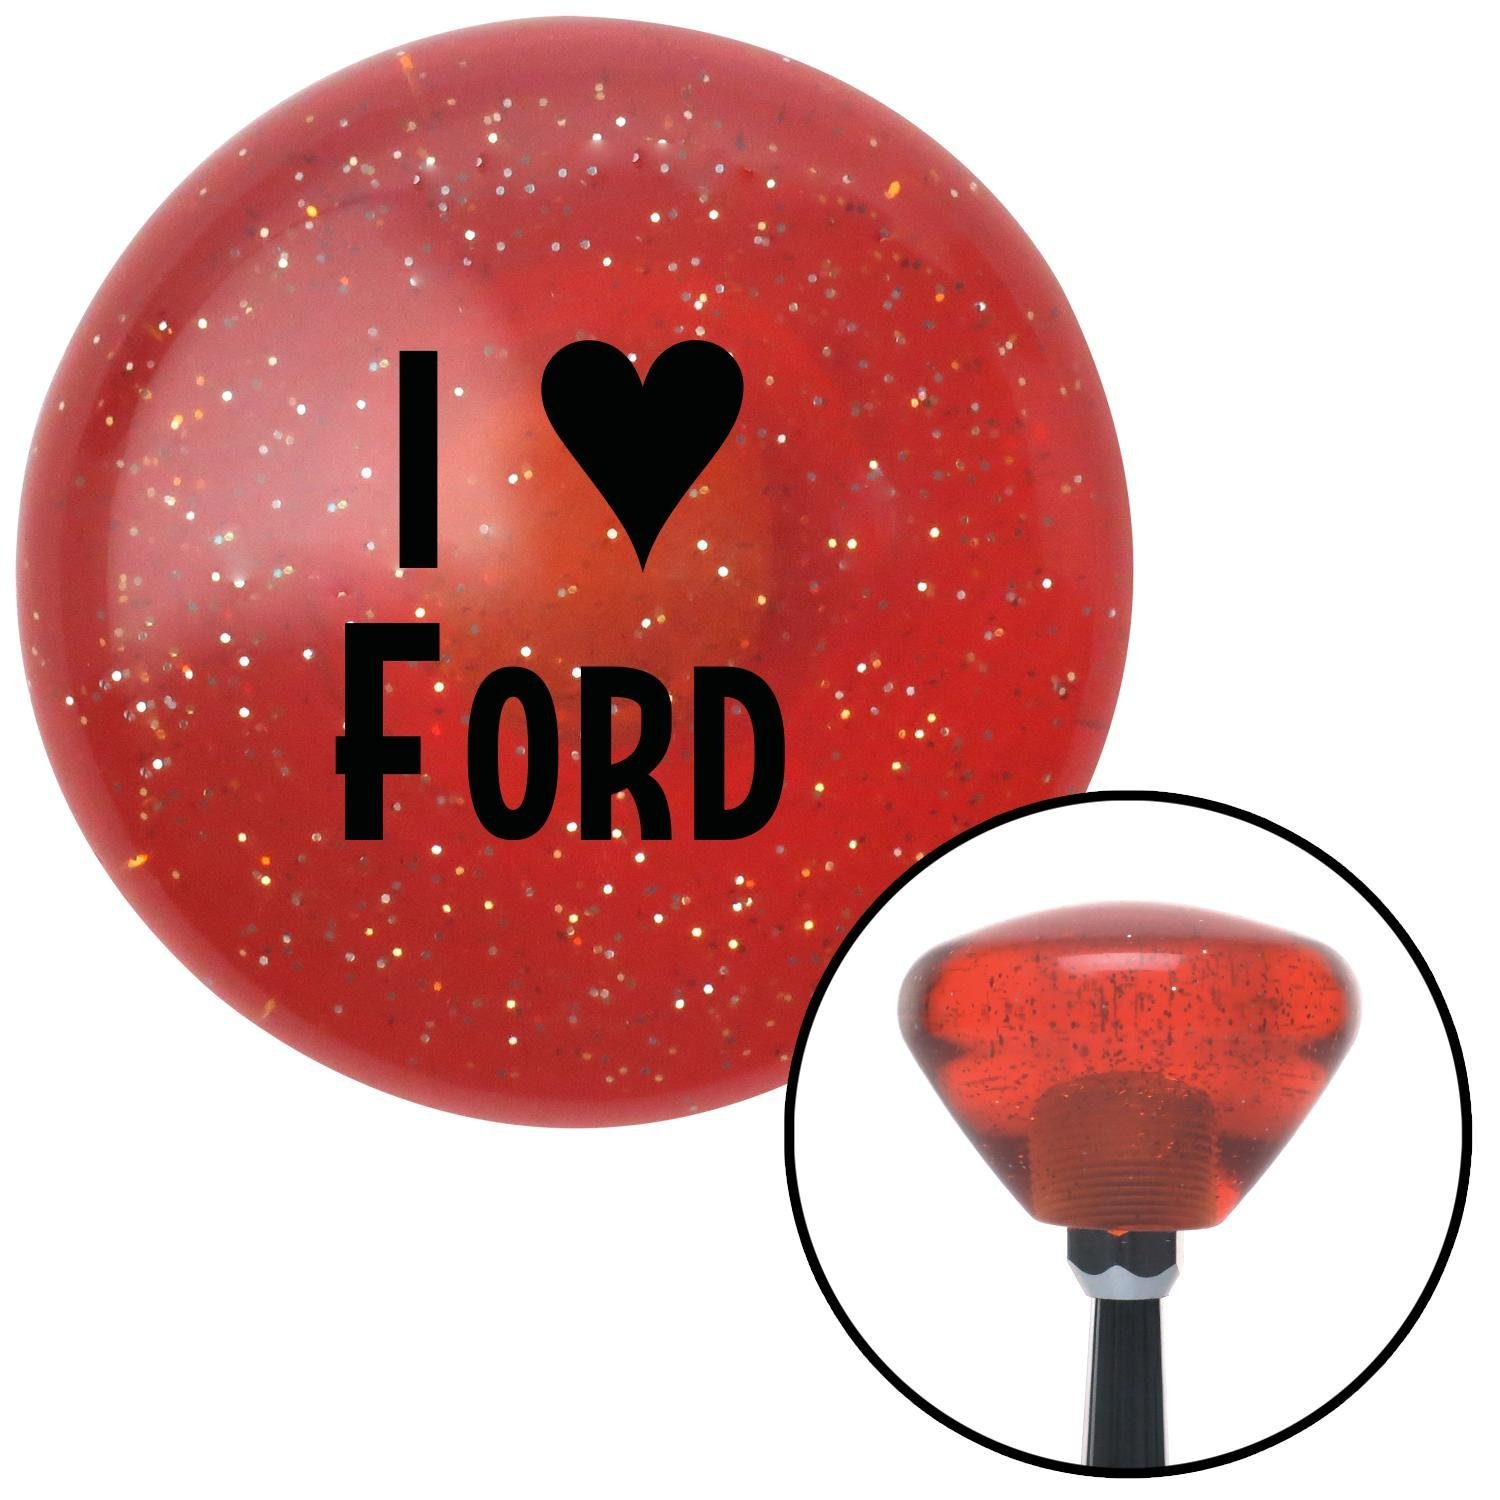 American Shifter 177809 Orange Retro Metal Flake Shift Knob with M16 x 1.5 Insert Black I 3 Ford